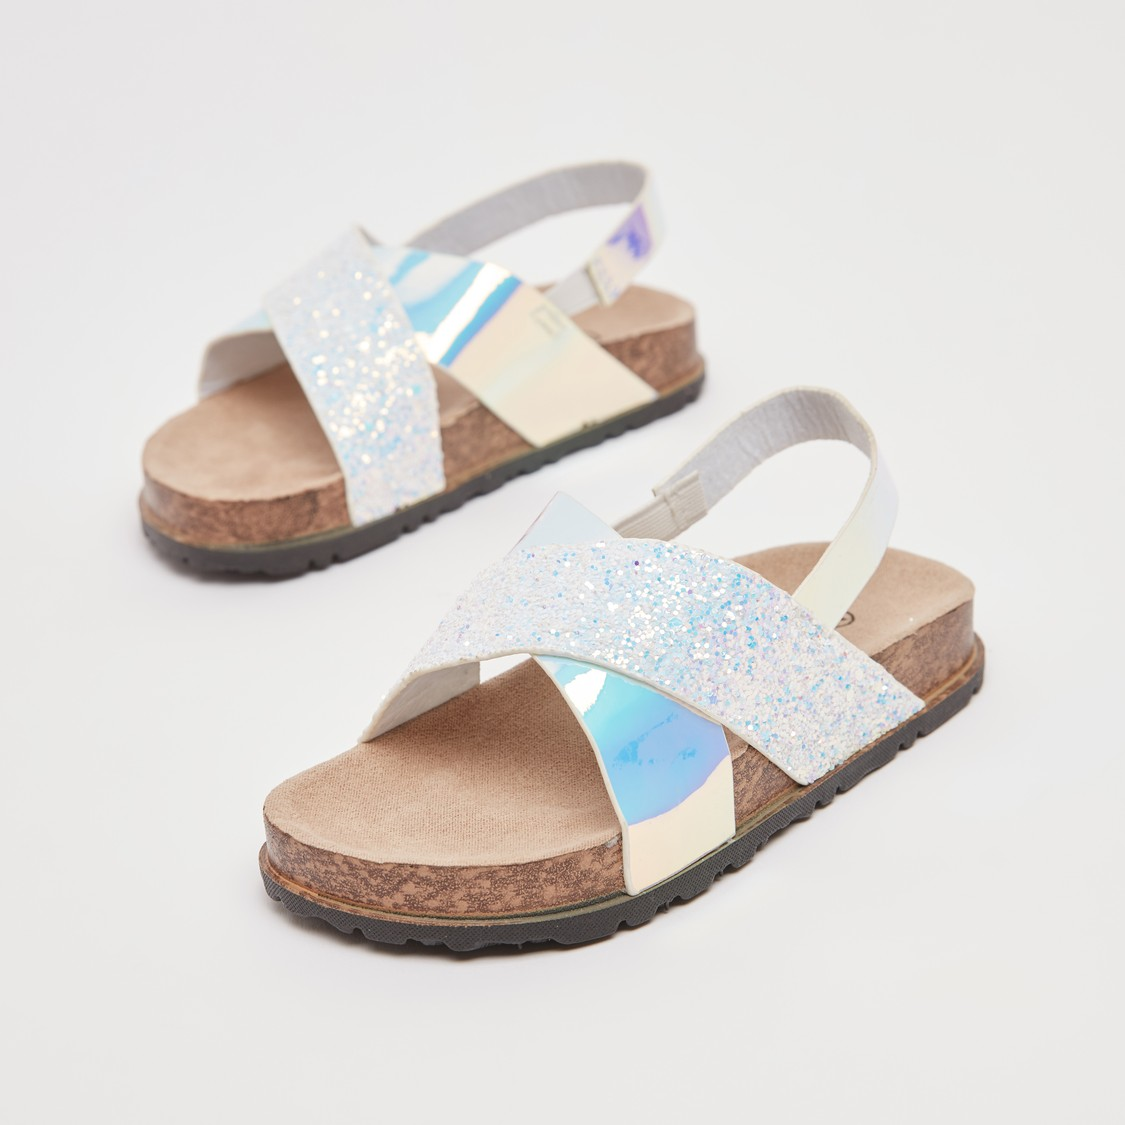 Textured Sandals with Cross Straps and Slingback